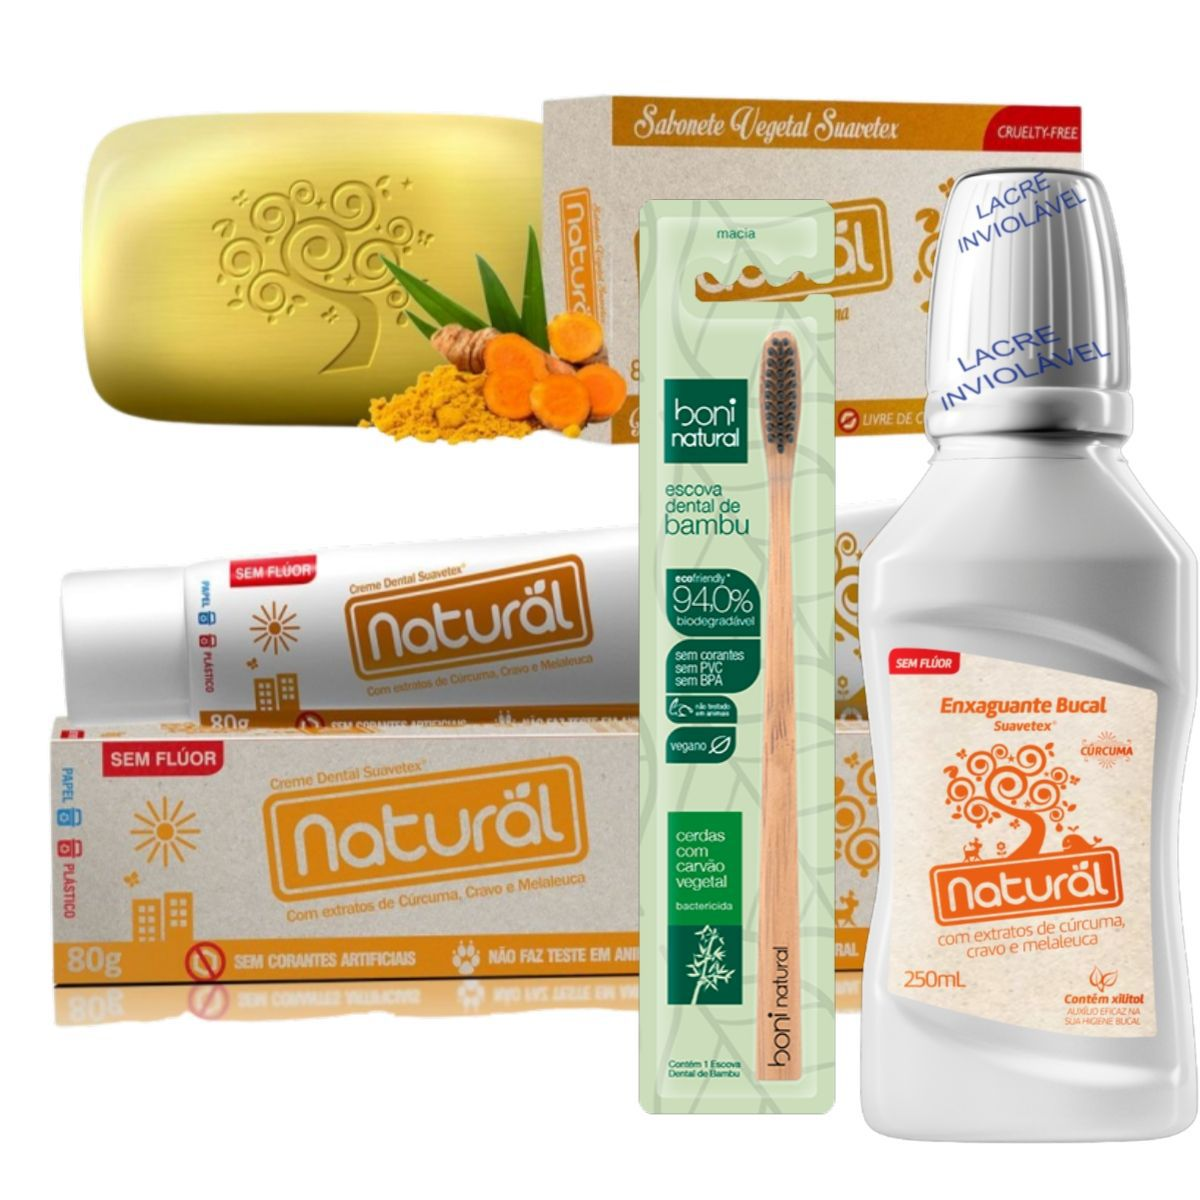 Kit Creme Dental Cúrcuma 80g + Escova Dental Carvão Vegetal + Enxaguante Bucal Cúrcuma 250ml + Sabonete de Cúrcuma 80gr - Orgânico Natural Boni